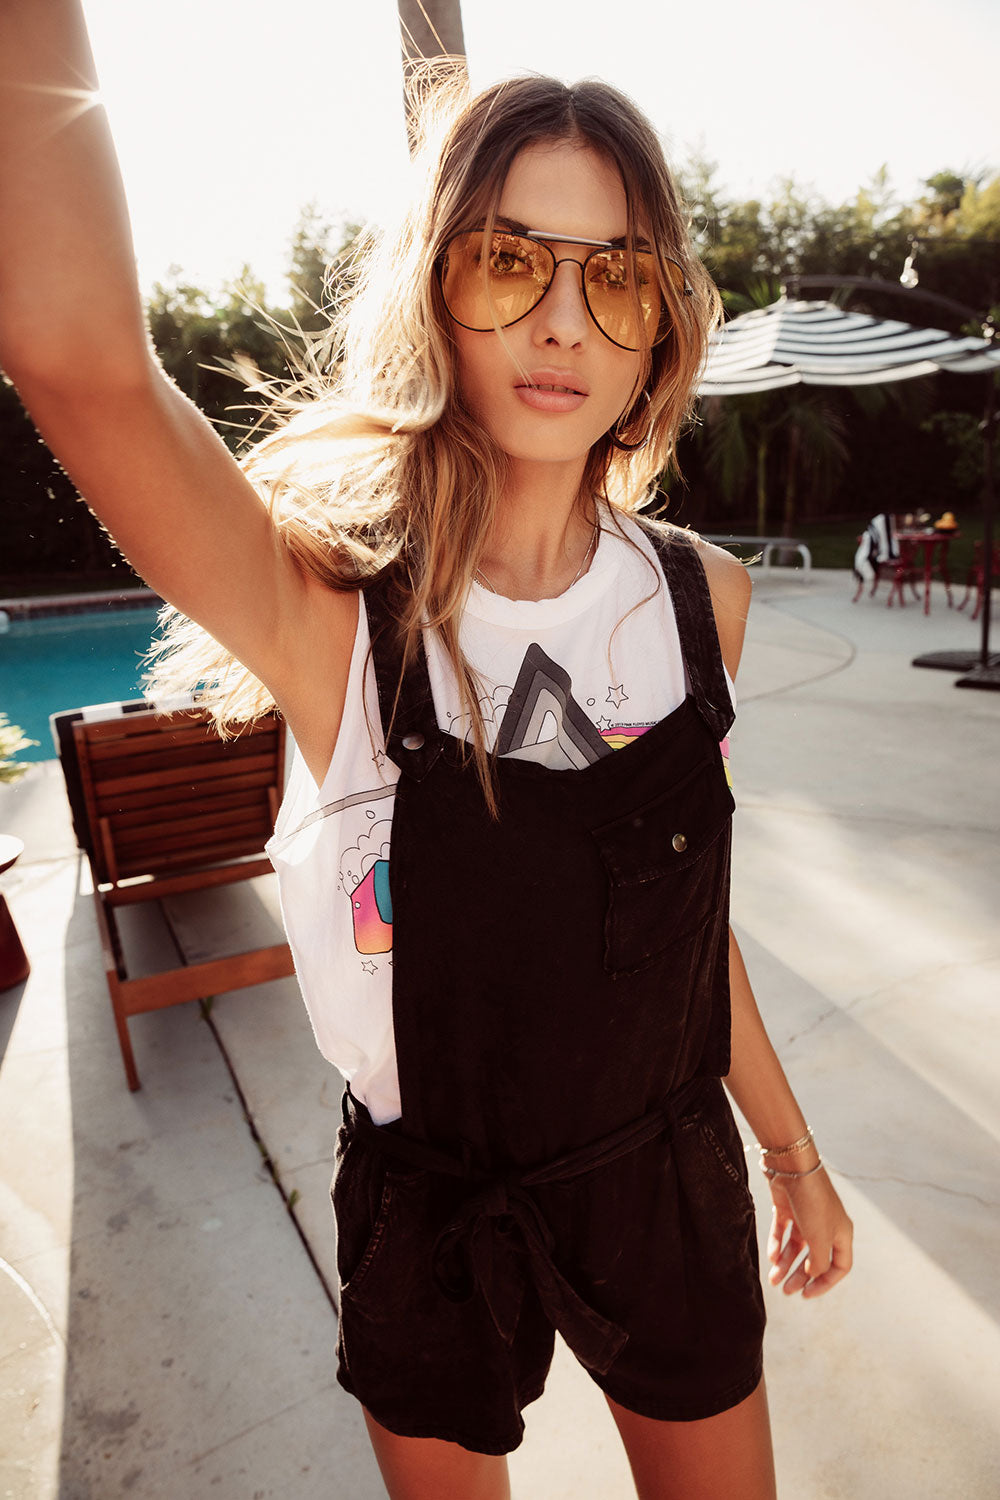 Heirloom Wovens Flouncy Shortalls W Tie, WOMENS, chaserbrand.com,chaser clothing,chaser apparel,chaser los angeles